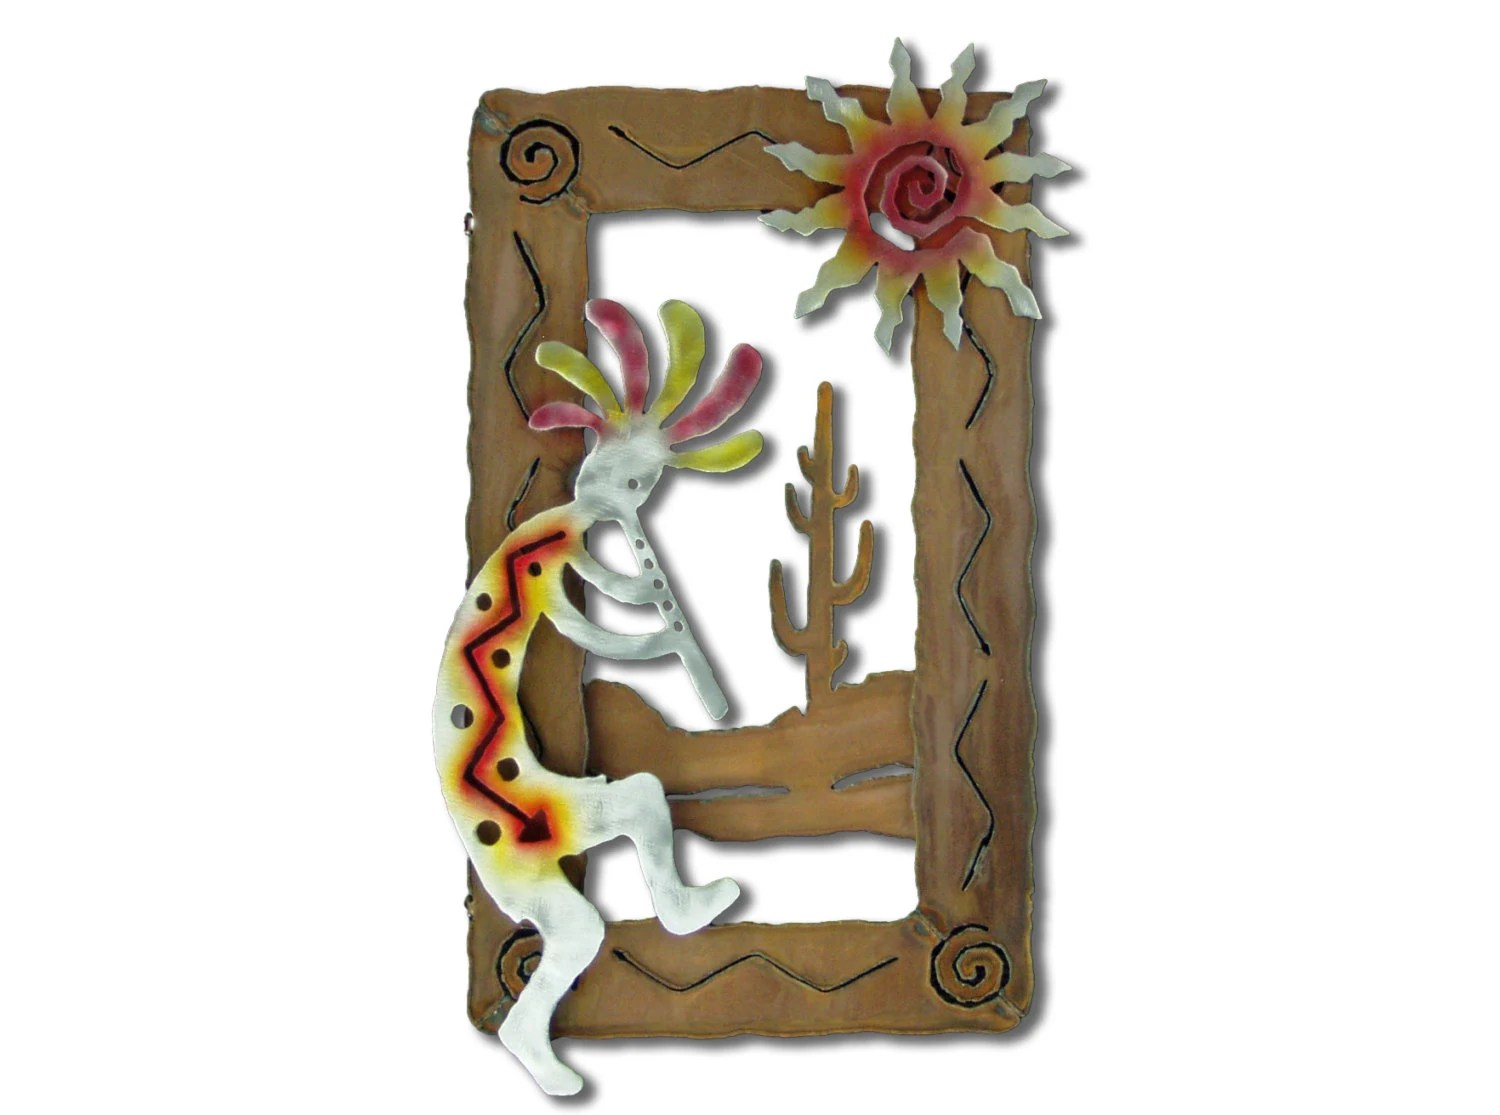 Metal Kokopelli Wall Sculpture With Sun And Cactus Rusted